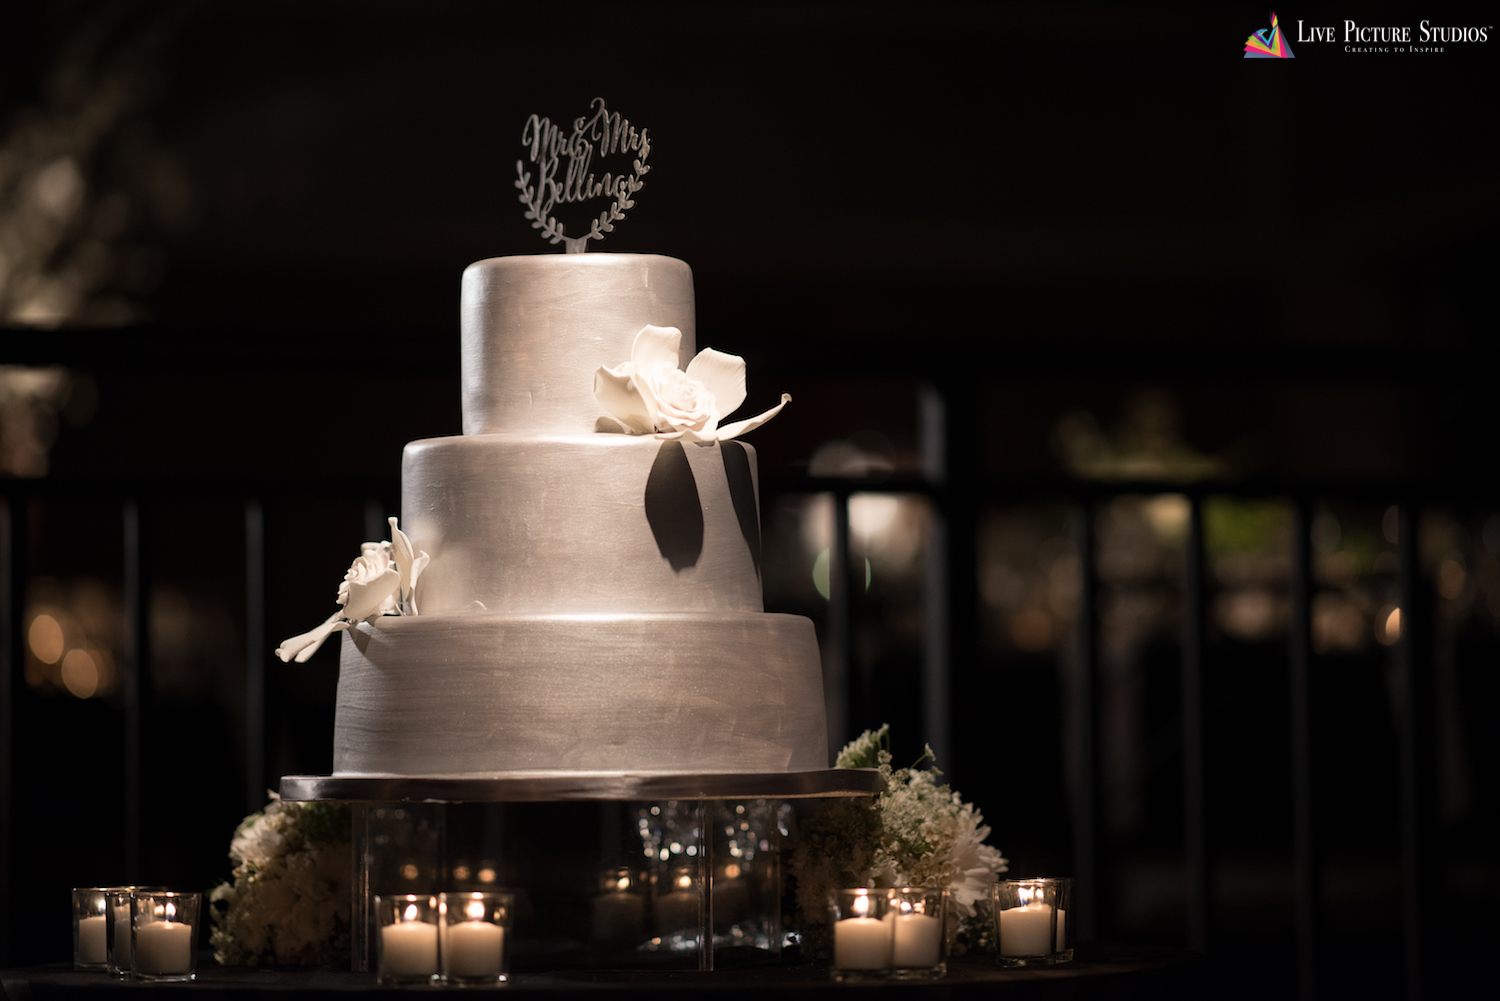 3 Cake Trends to Watch in 2018, According to Longtime NJ Wedding Photographers